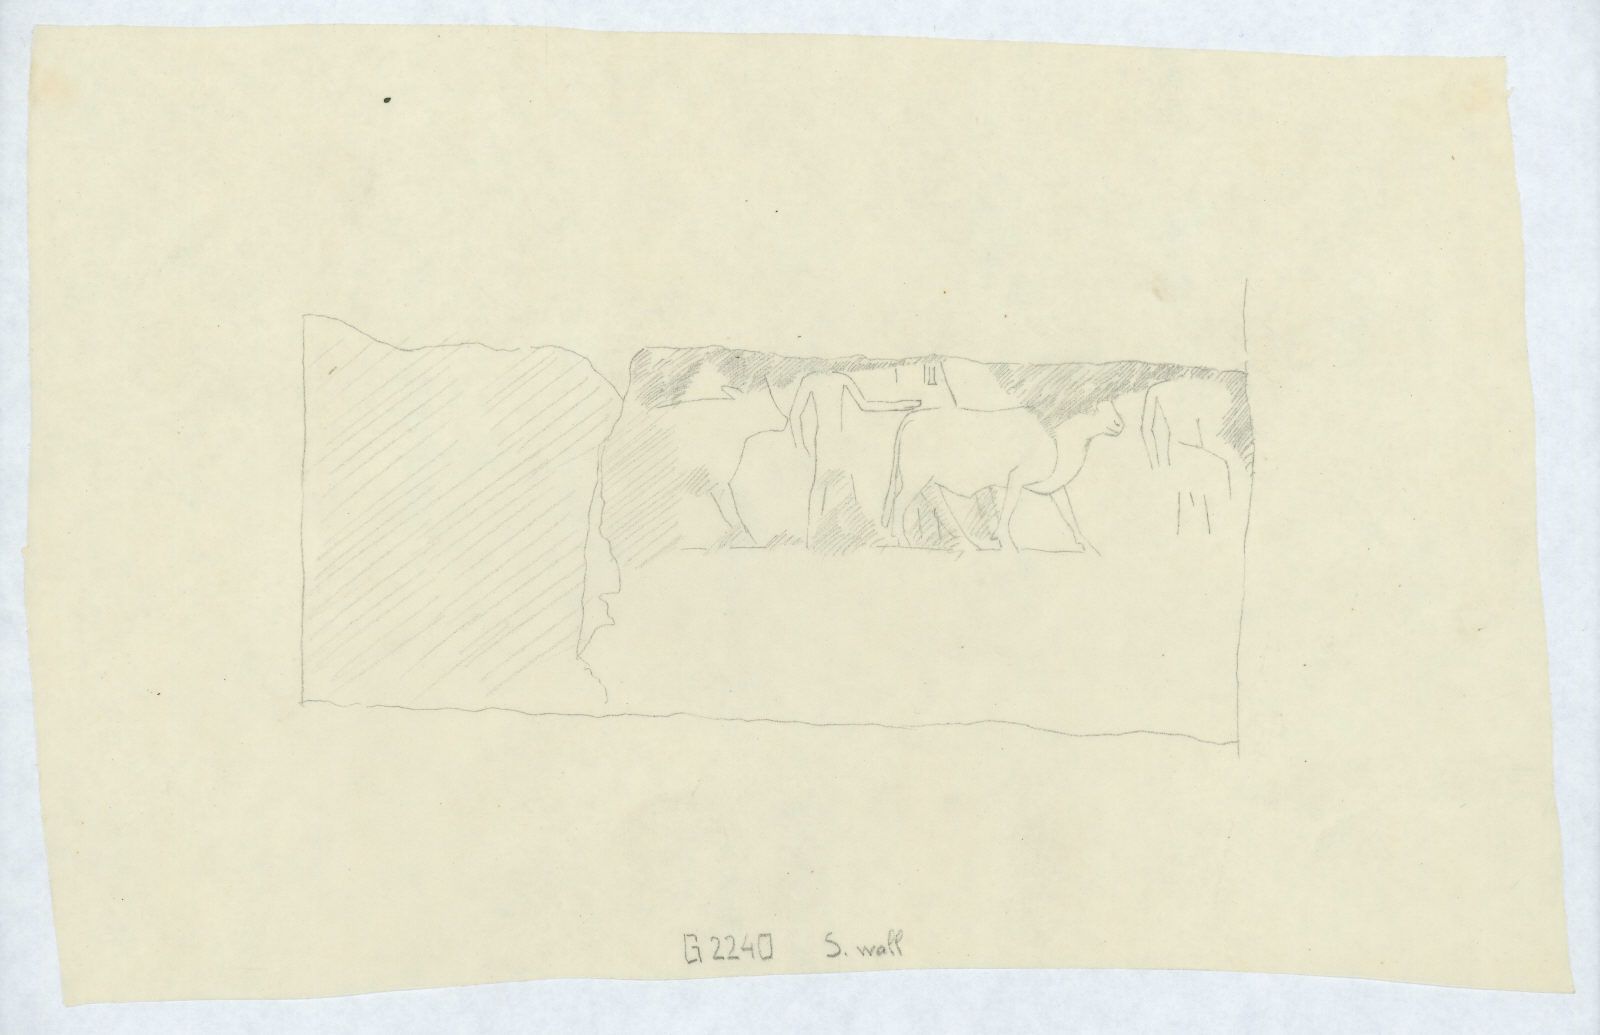 Drawings: G 2240: relief from S wall